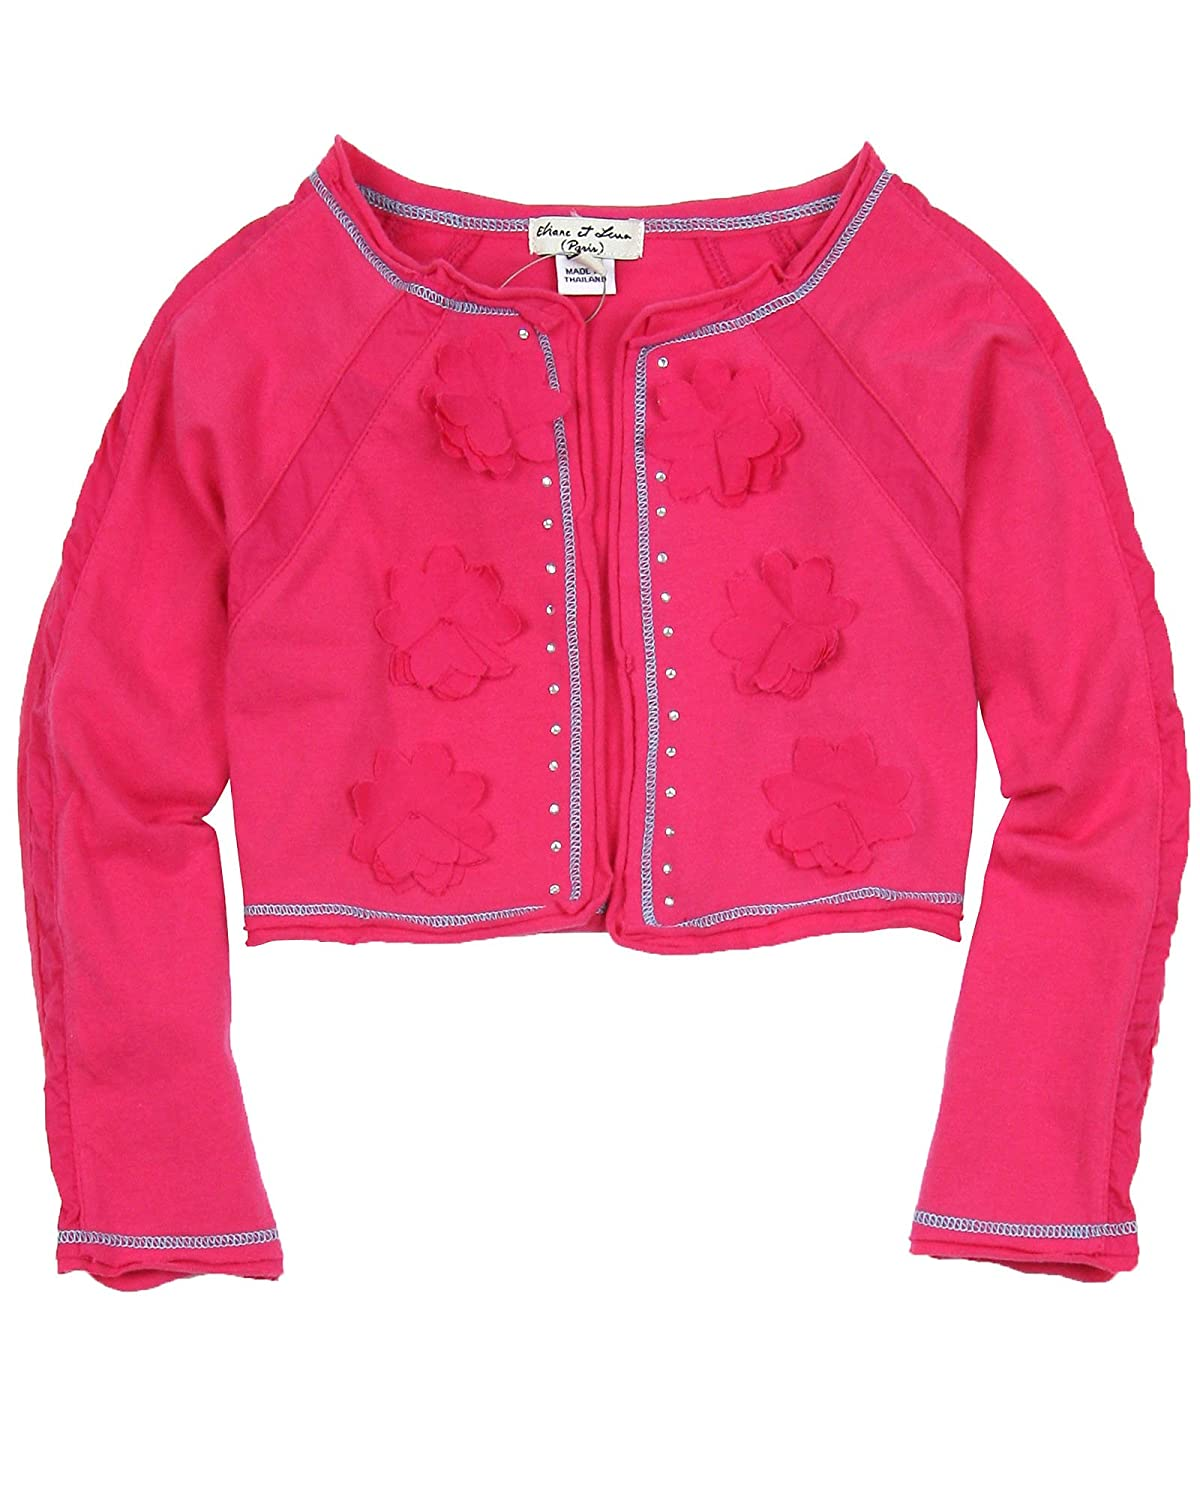 Sizes 4-14 Eliane et Lena Girls Jersey Bolero Portissol